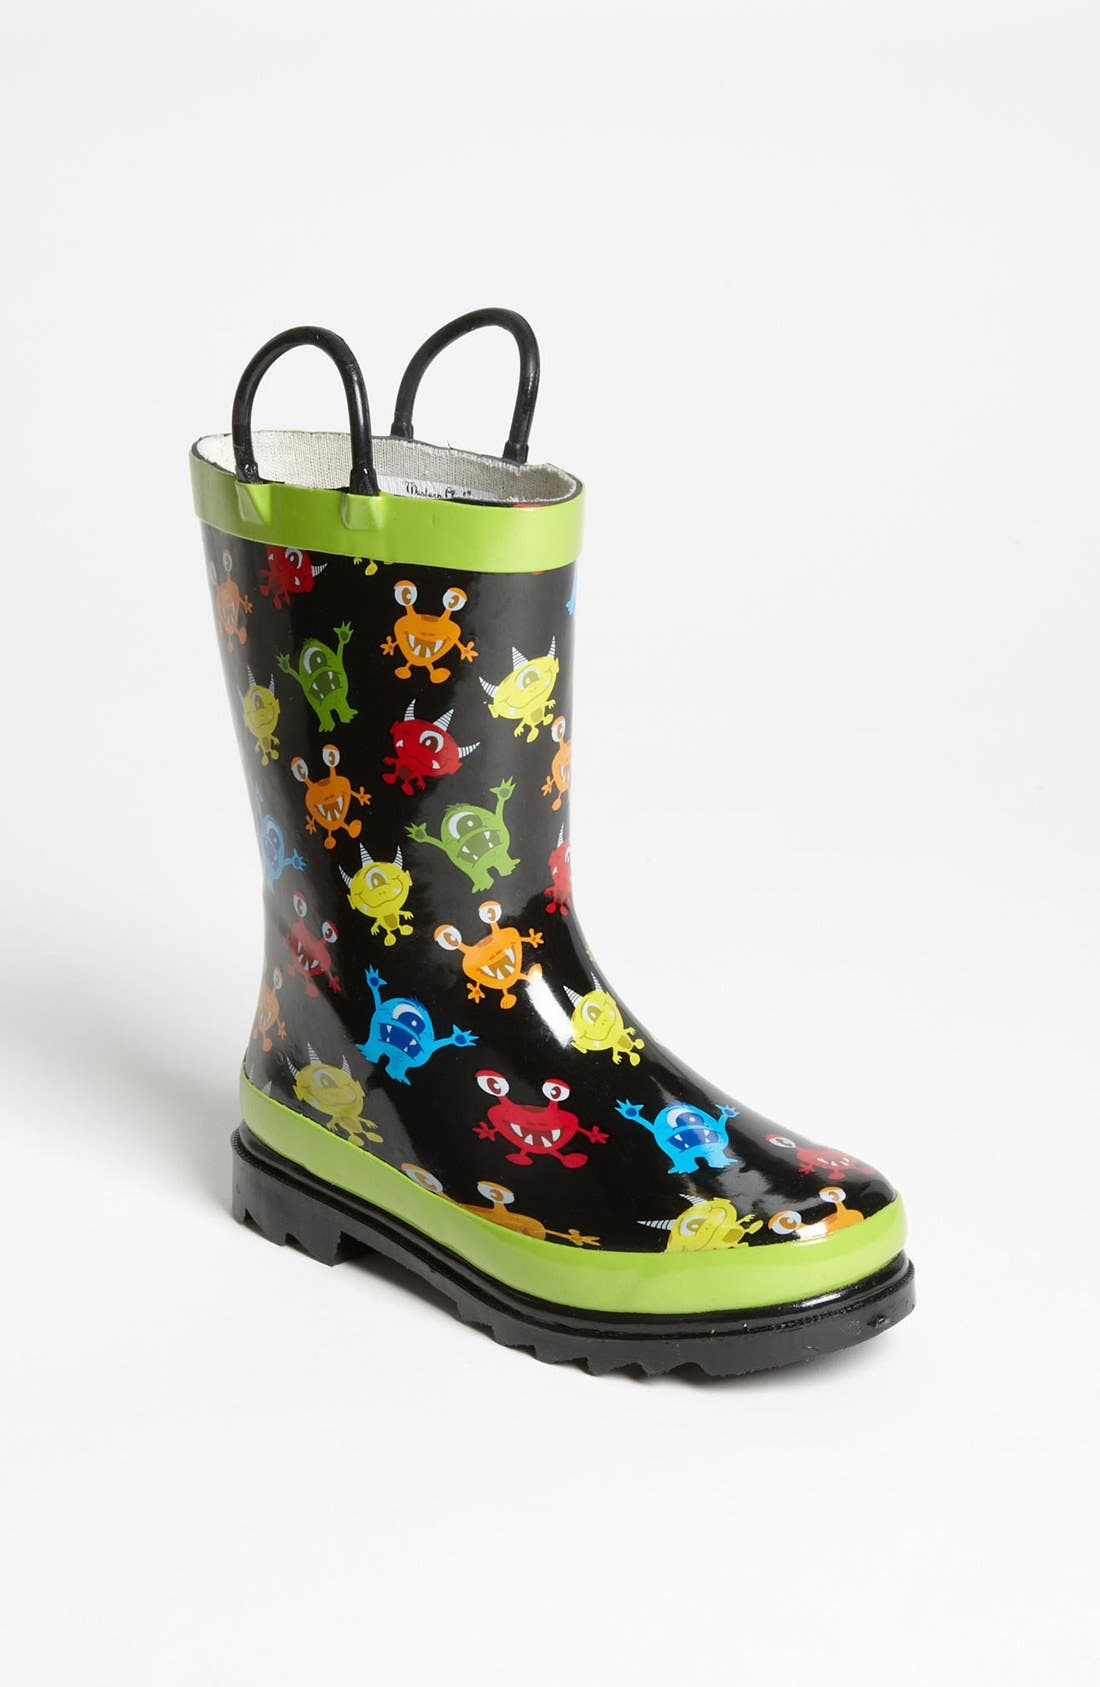 Alternate Image 1 Selected - Western Chief 'Monster Party' Rain Boot (Walker, Toddler & Little Kid)